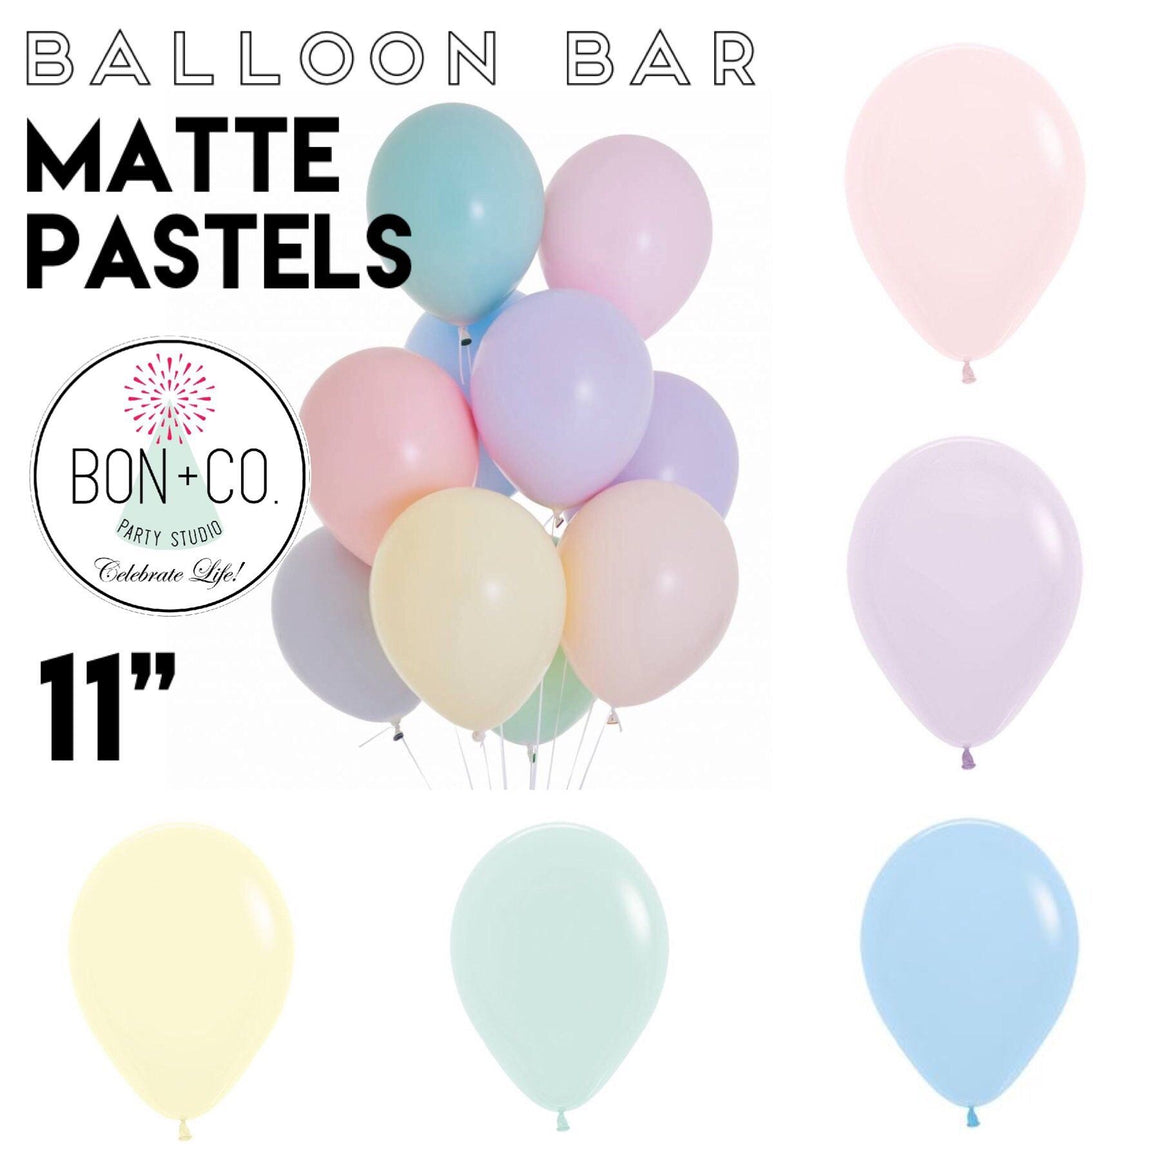 "BALLOON BAR - 11"" MATTE PASTELS, Balloons, Sempertex - Bon + Co. Party Studio"